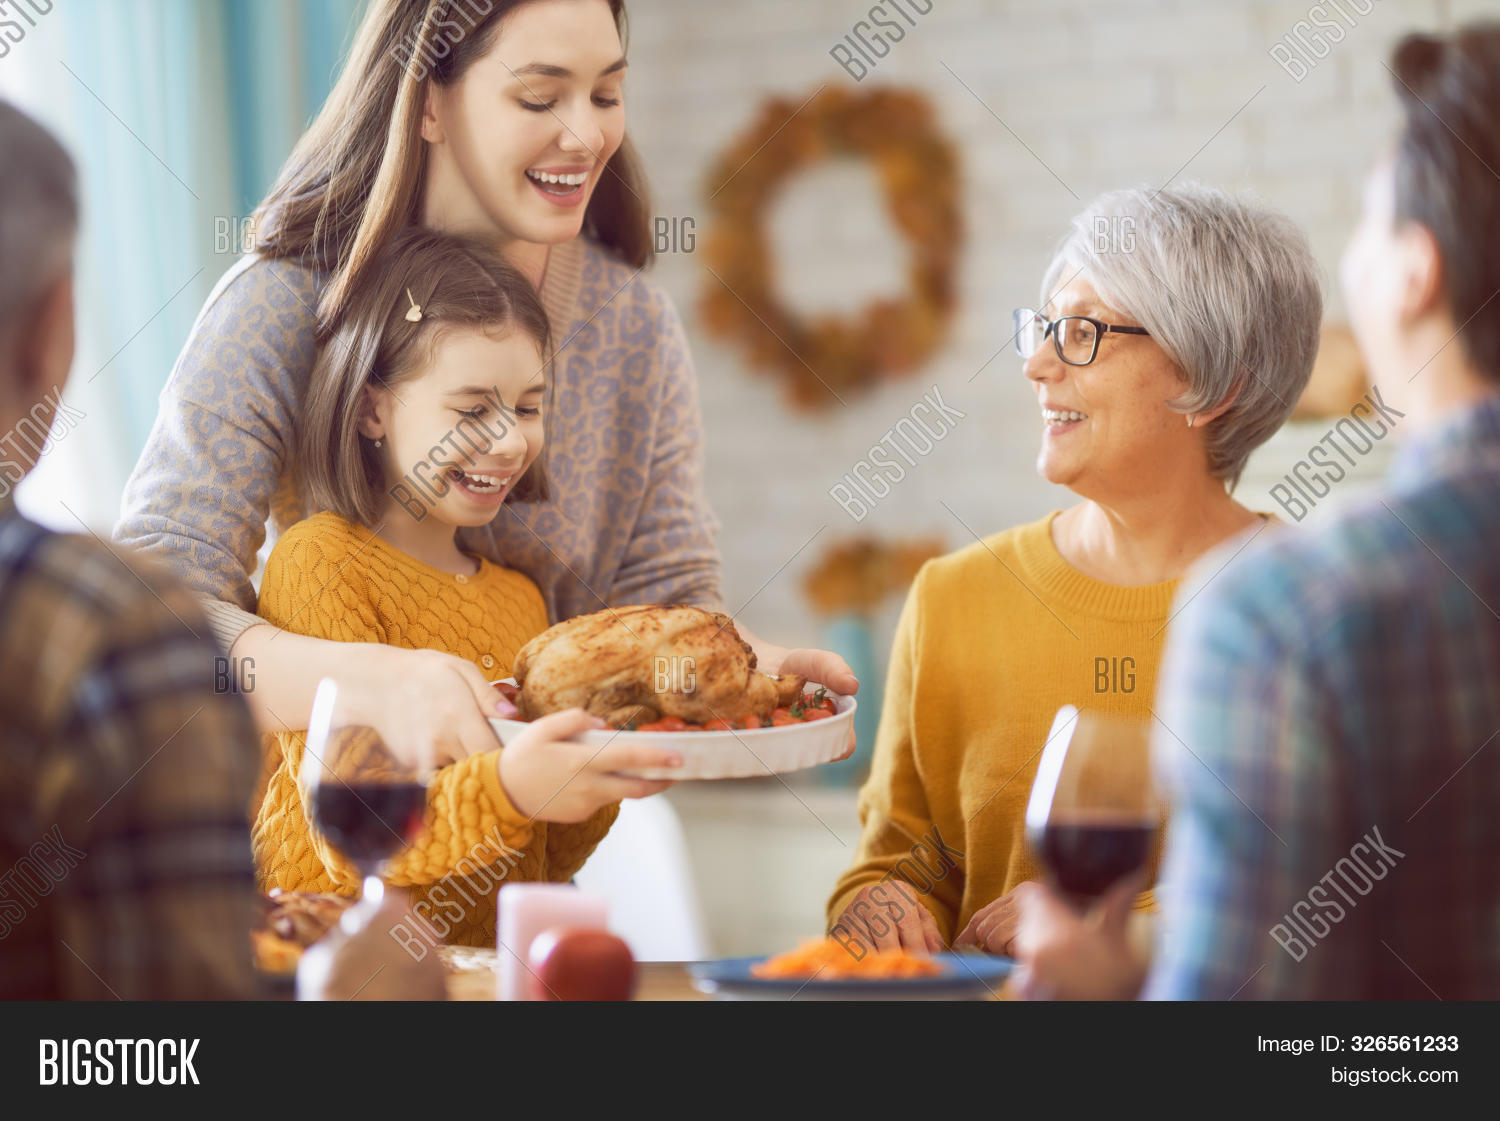 adult,blessing,candles,caucasian,celebration,cheerful,children,crops,day,dining,dinner,drinks,eating,enjoyment,event,fall,family,father,feast,food,friend,fun,girl,greetings,group,happiness,happy,holiday,kid,meals,men,mother,parents,party,people,pie,prayer,pumpkin,relative,senior,table,thankful,thanksgiving,together,togetherness,tradition,turkey,women,young